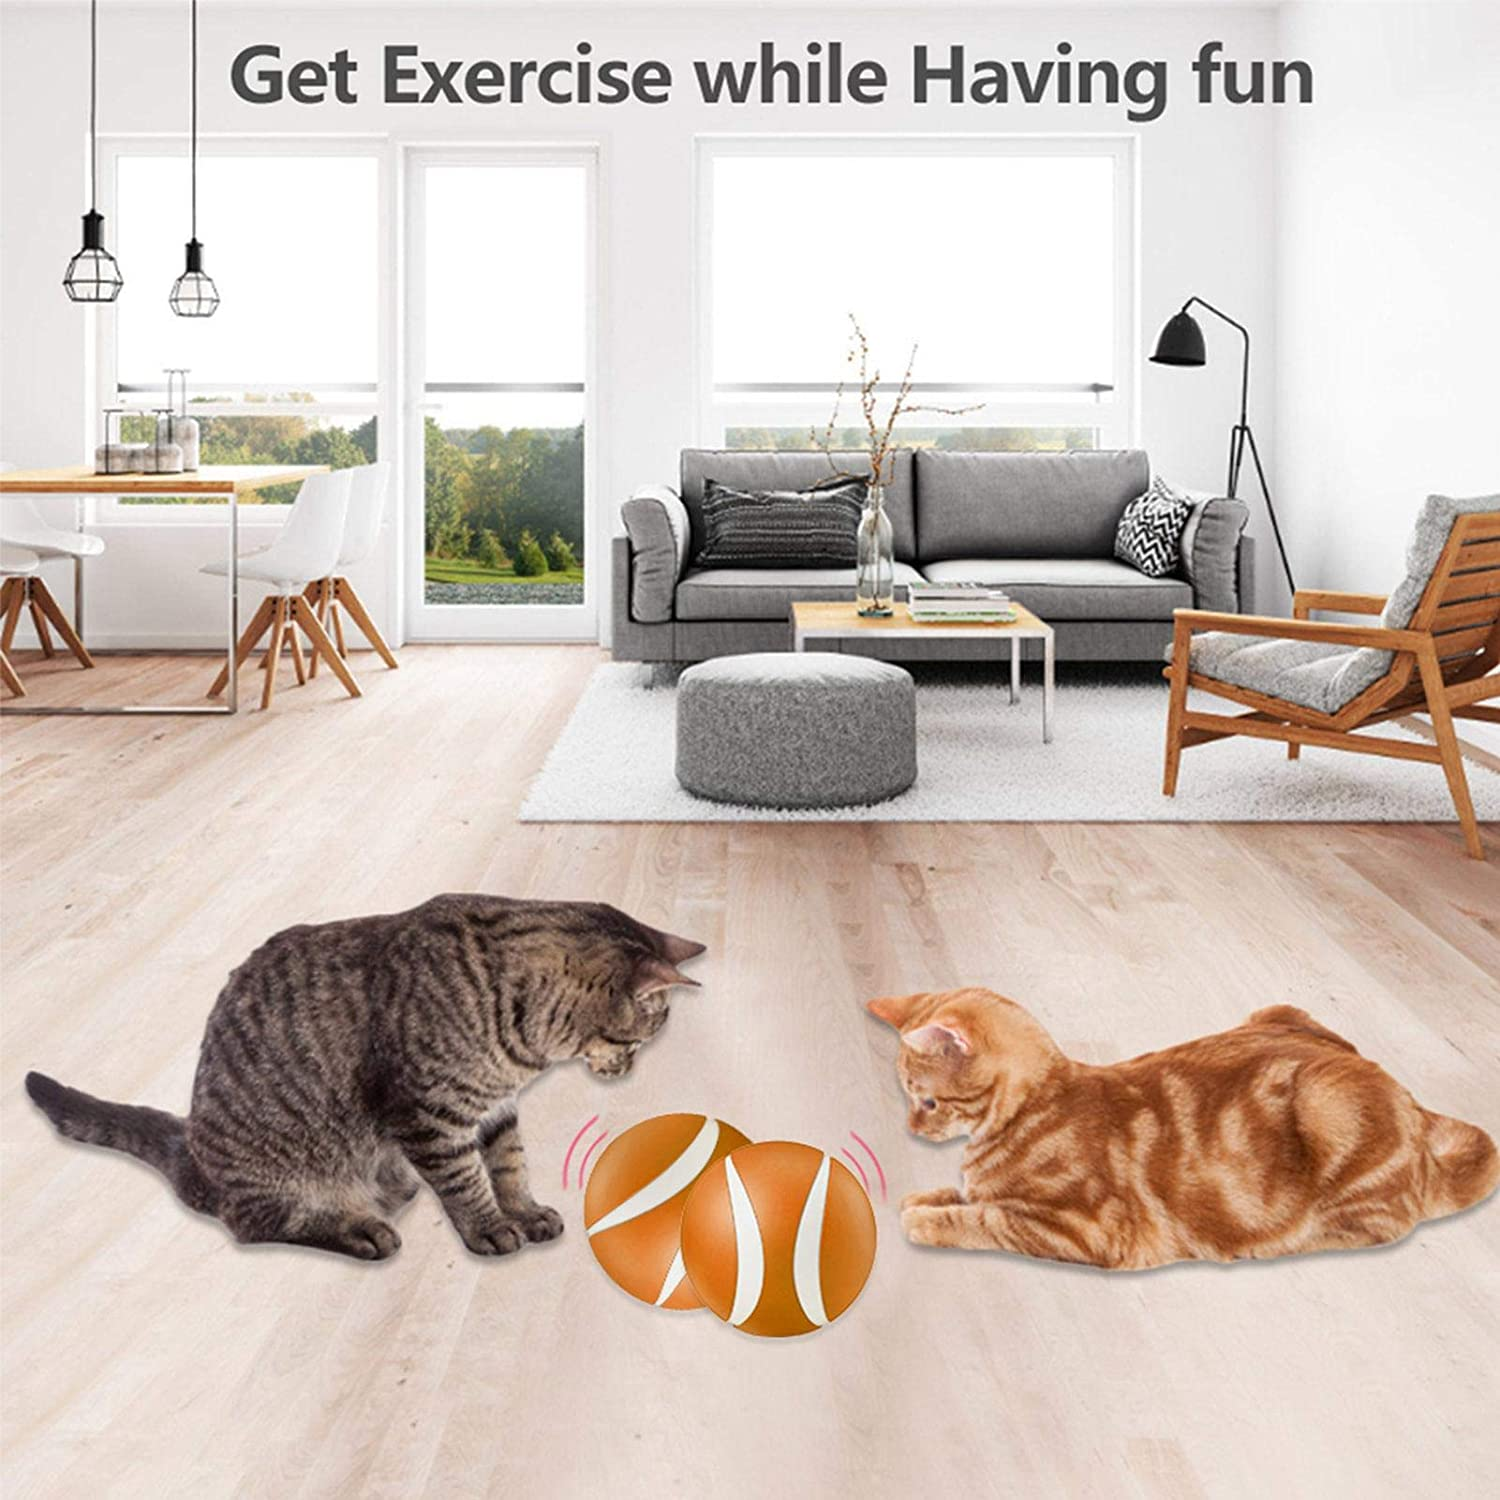 su-xuri Interactive Cat Toys Balls With Remote Control Self-Rotating /& USB Rechargeable LED Electric Flashing Ball For Cats Dogs Kitten Funny Chaser Roller